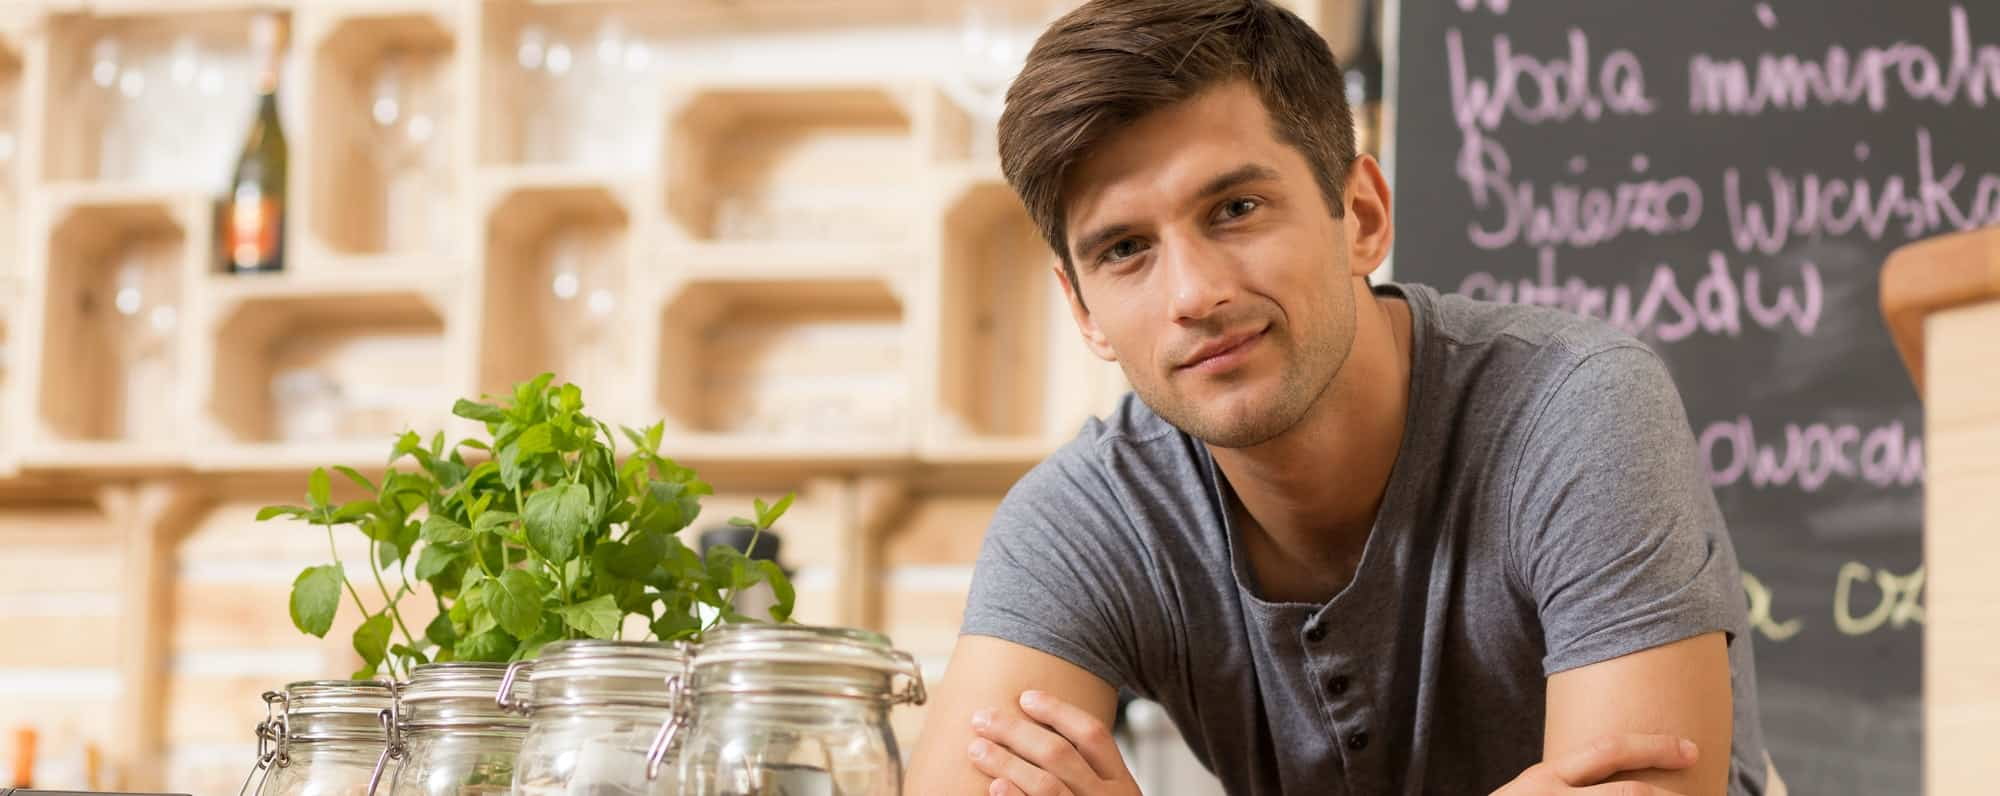 Young man working in restaurant